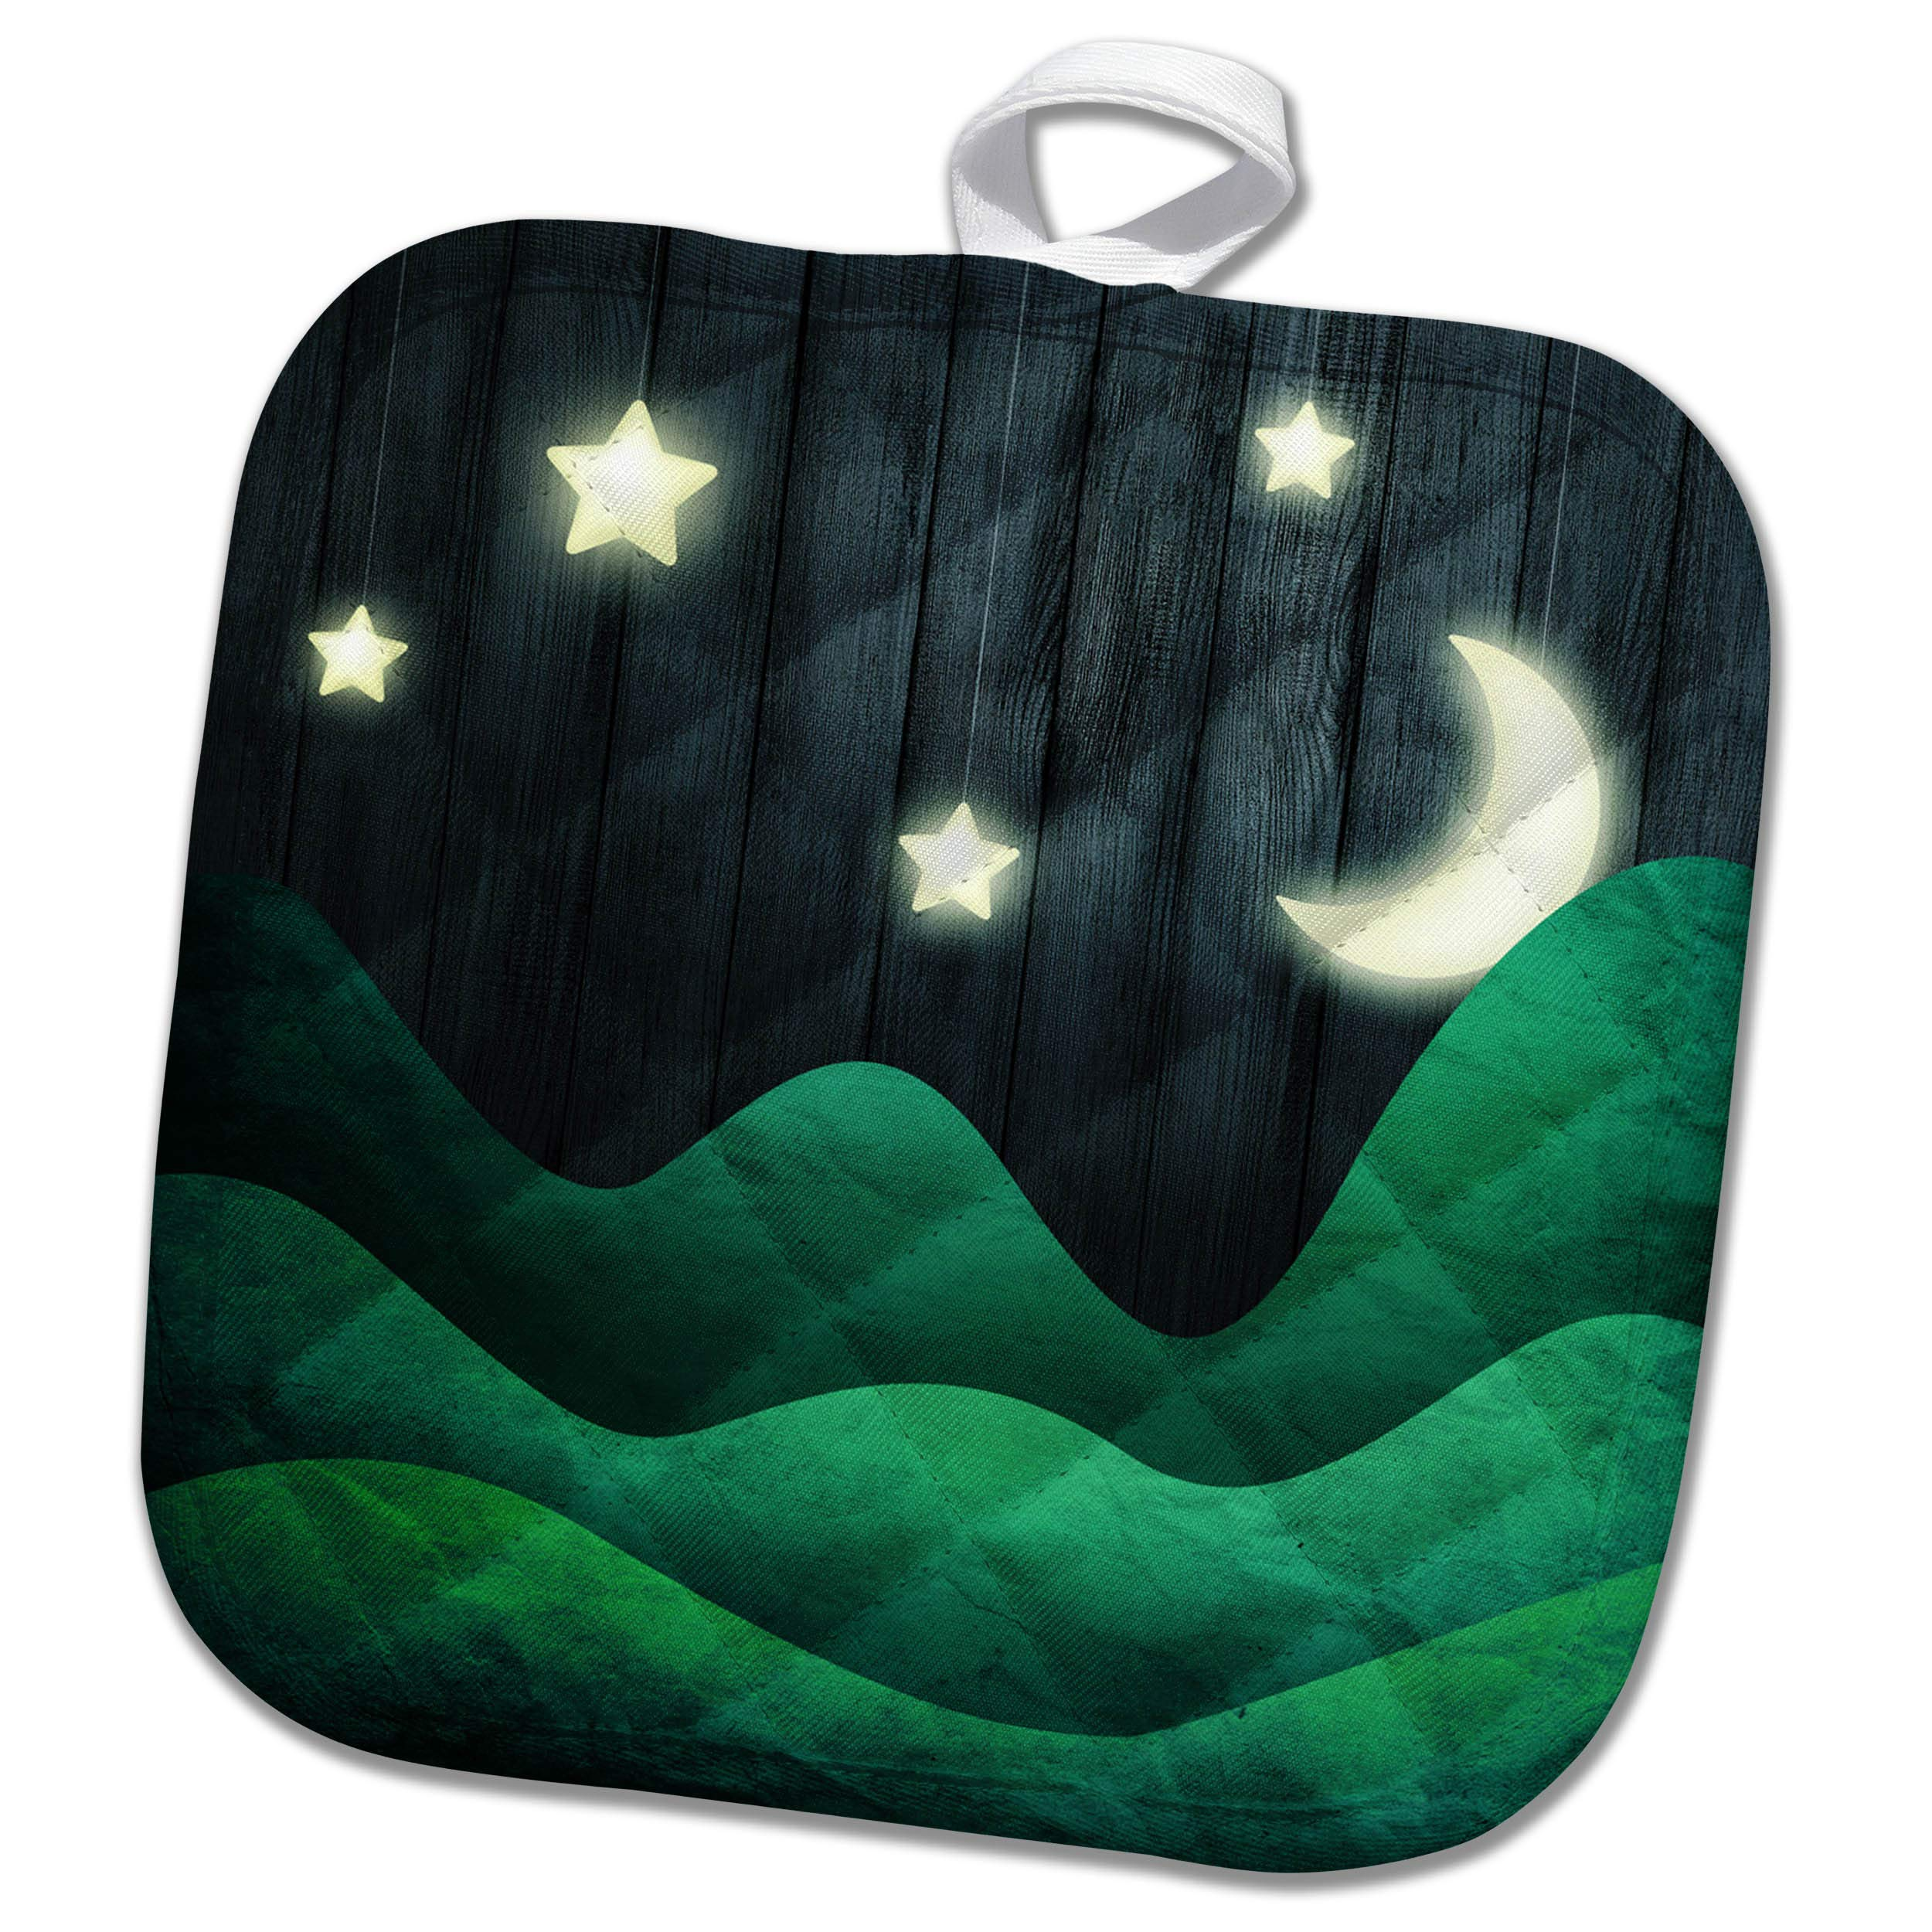 3dRose Anne Marie Baugh - Scenes - Hanging Moon and Stars Against an Image of Blue Wood Scene - 8x8 Potholder (PHL_295530_1) by 3dRose (Image #1)